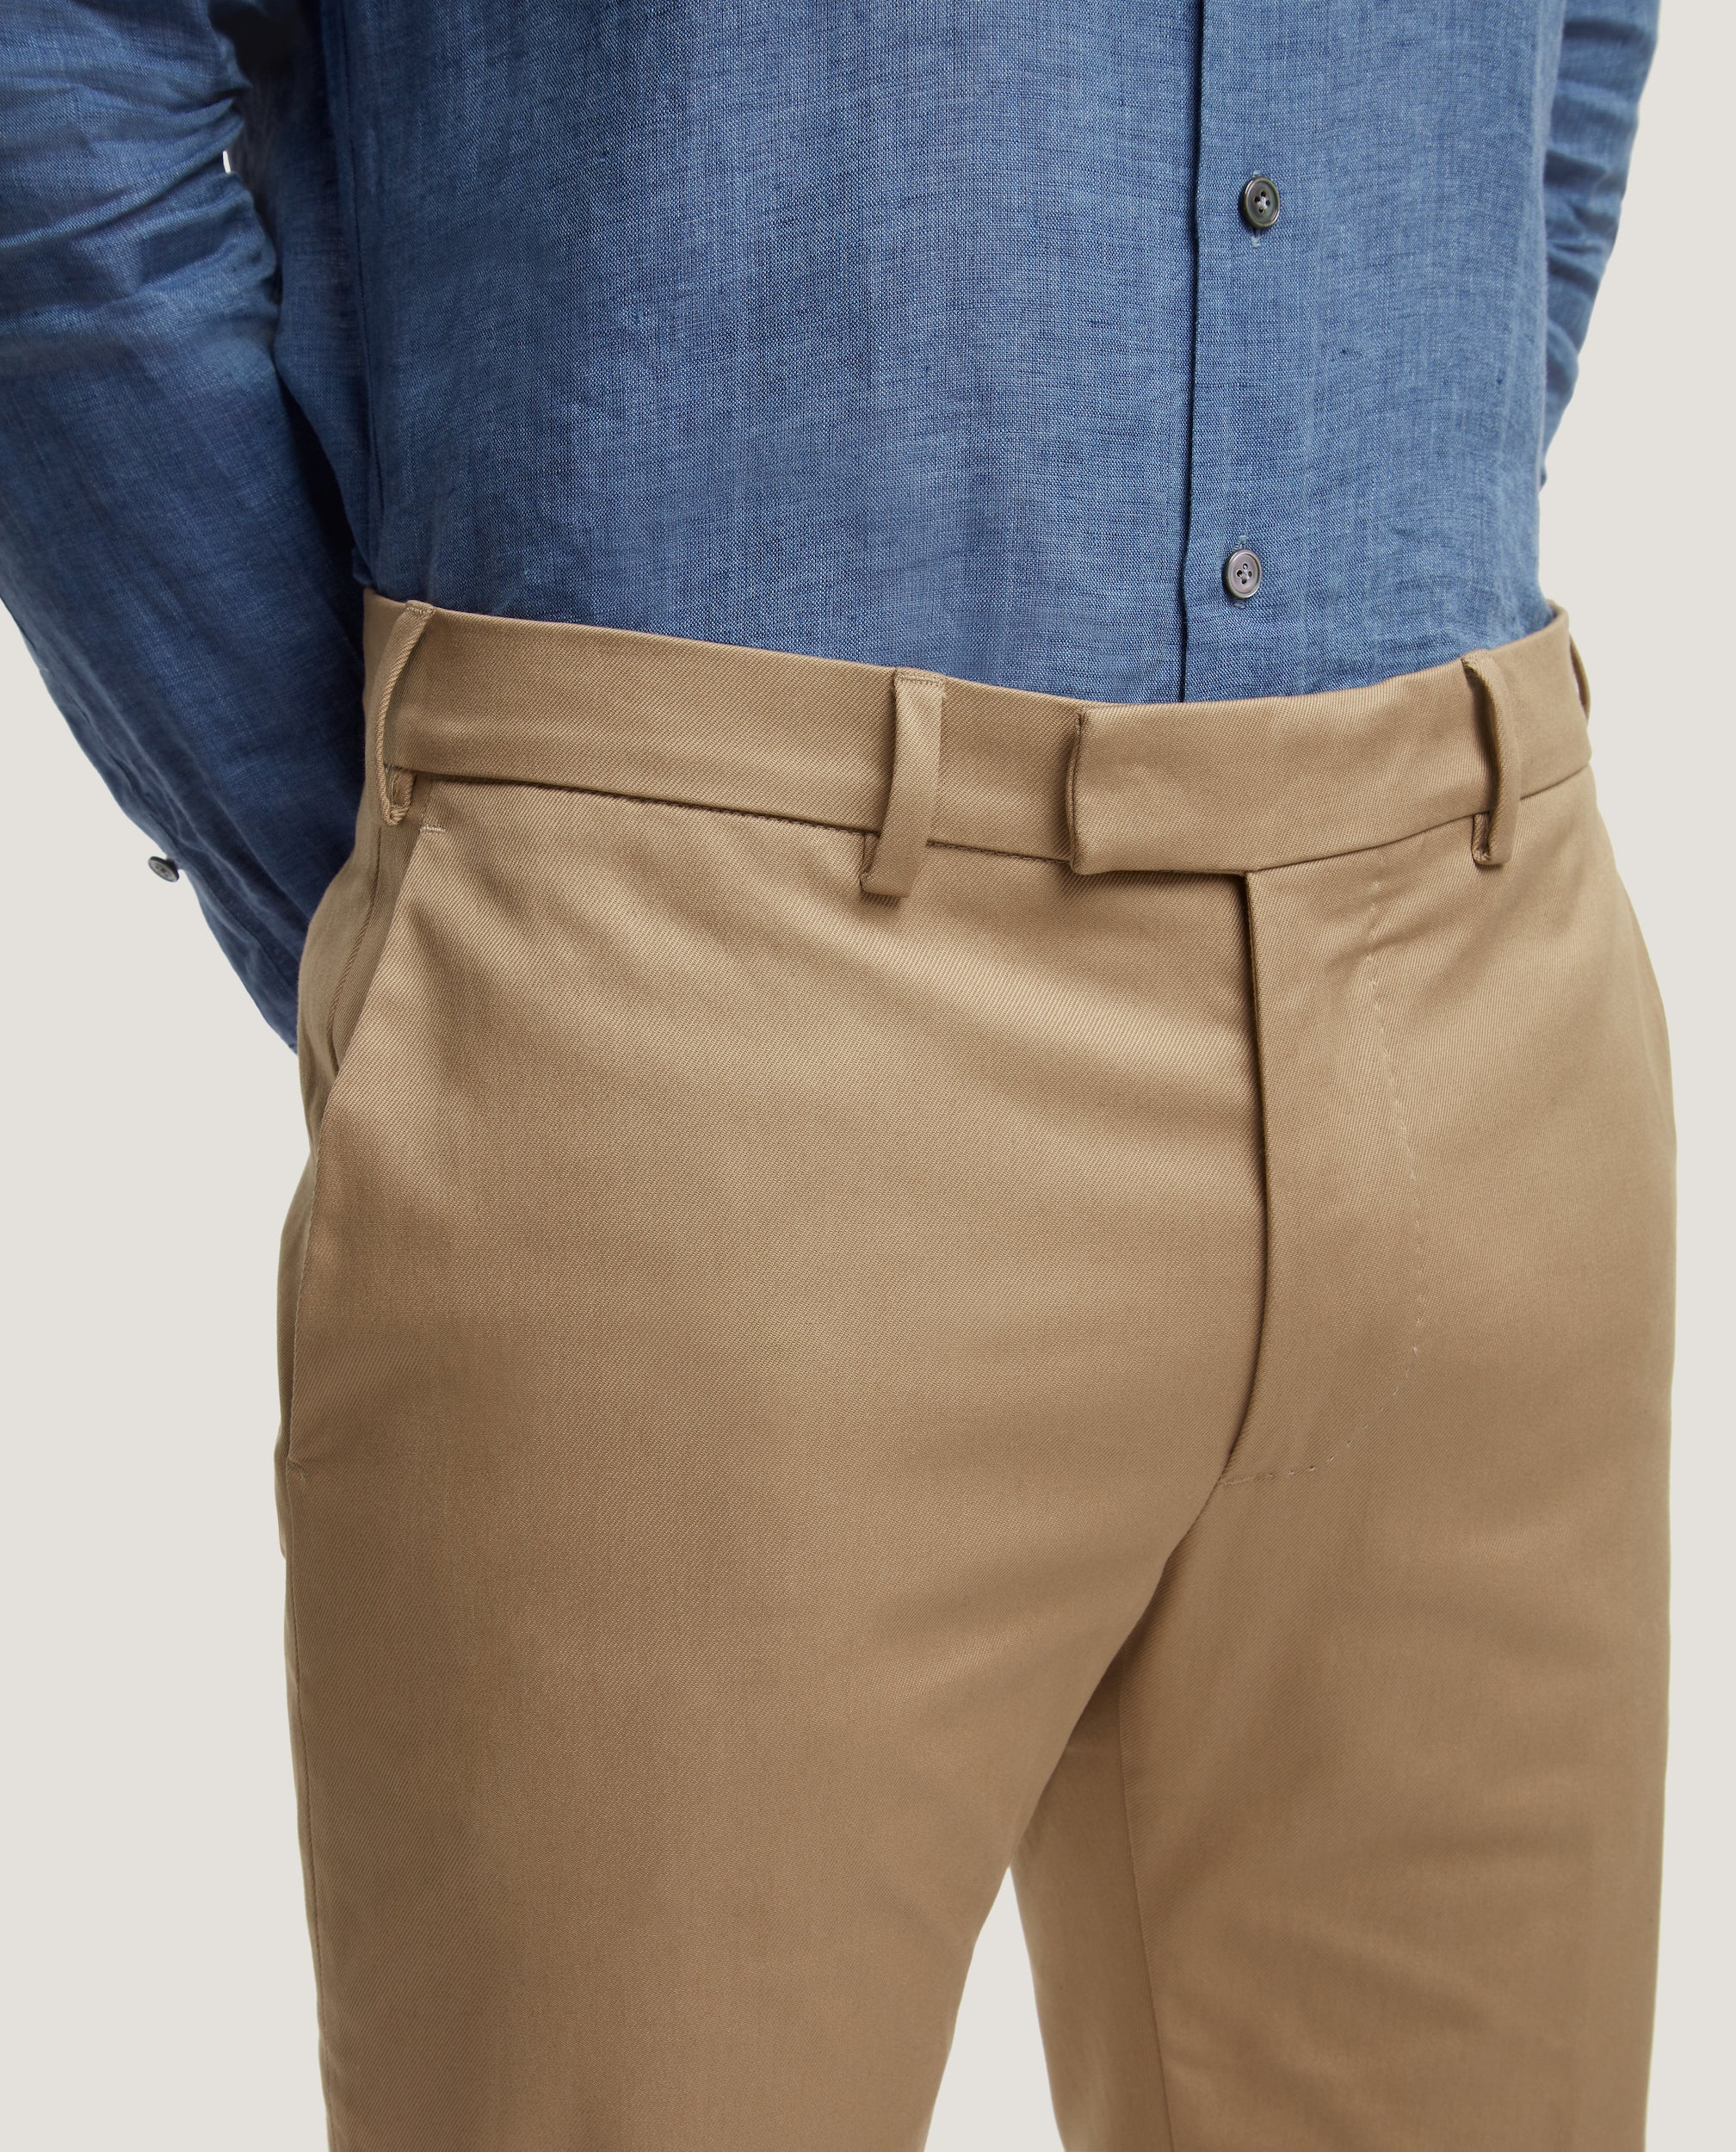 GEHRY Chino trousers | Slim fit | Cotton twill | Khaki